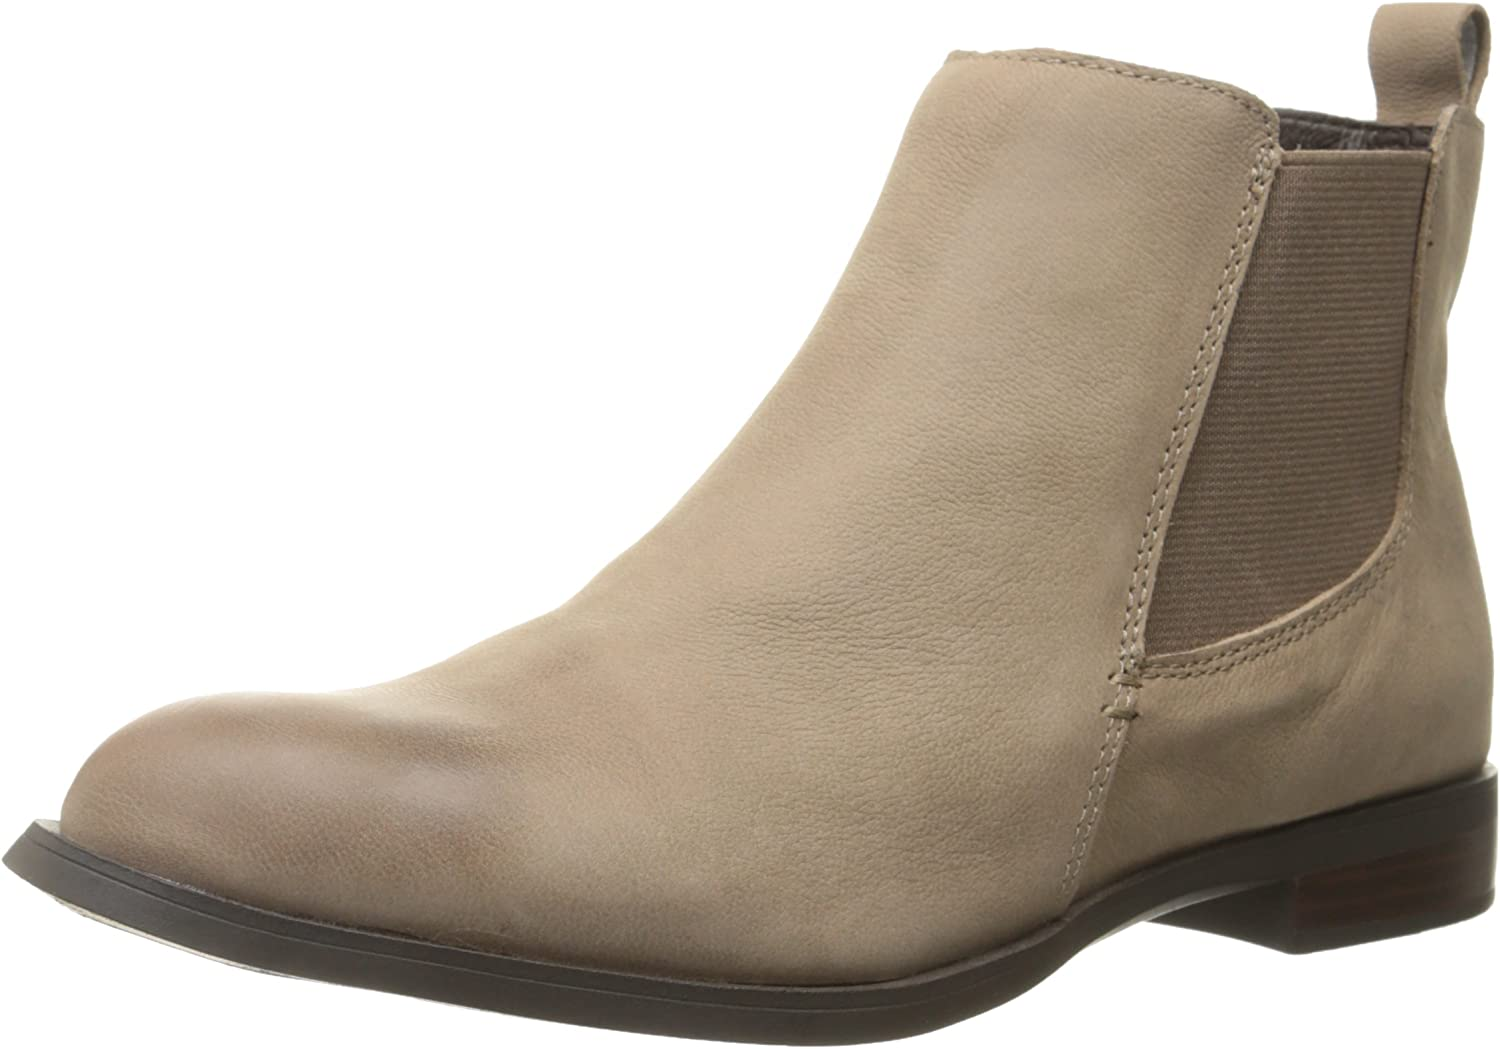 Victory Lap Chelsea Boot